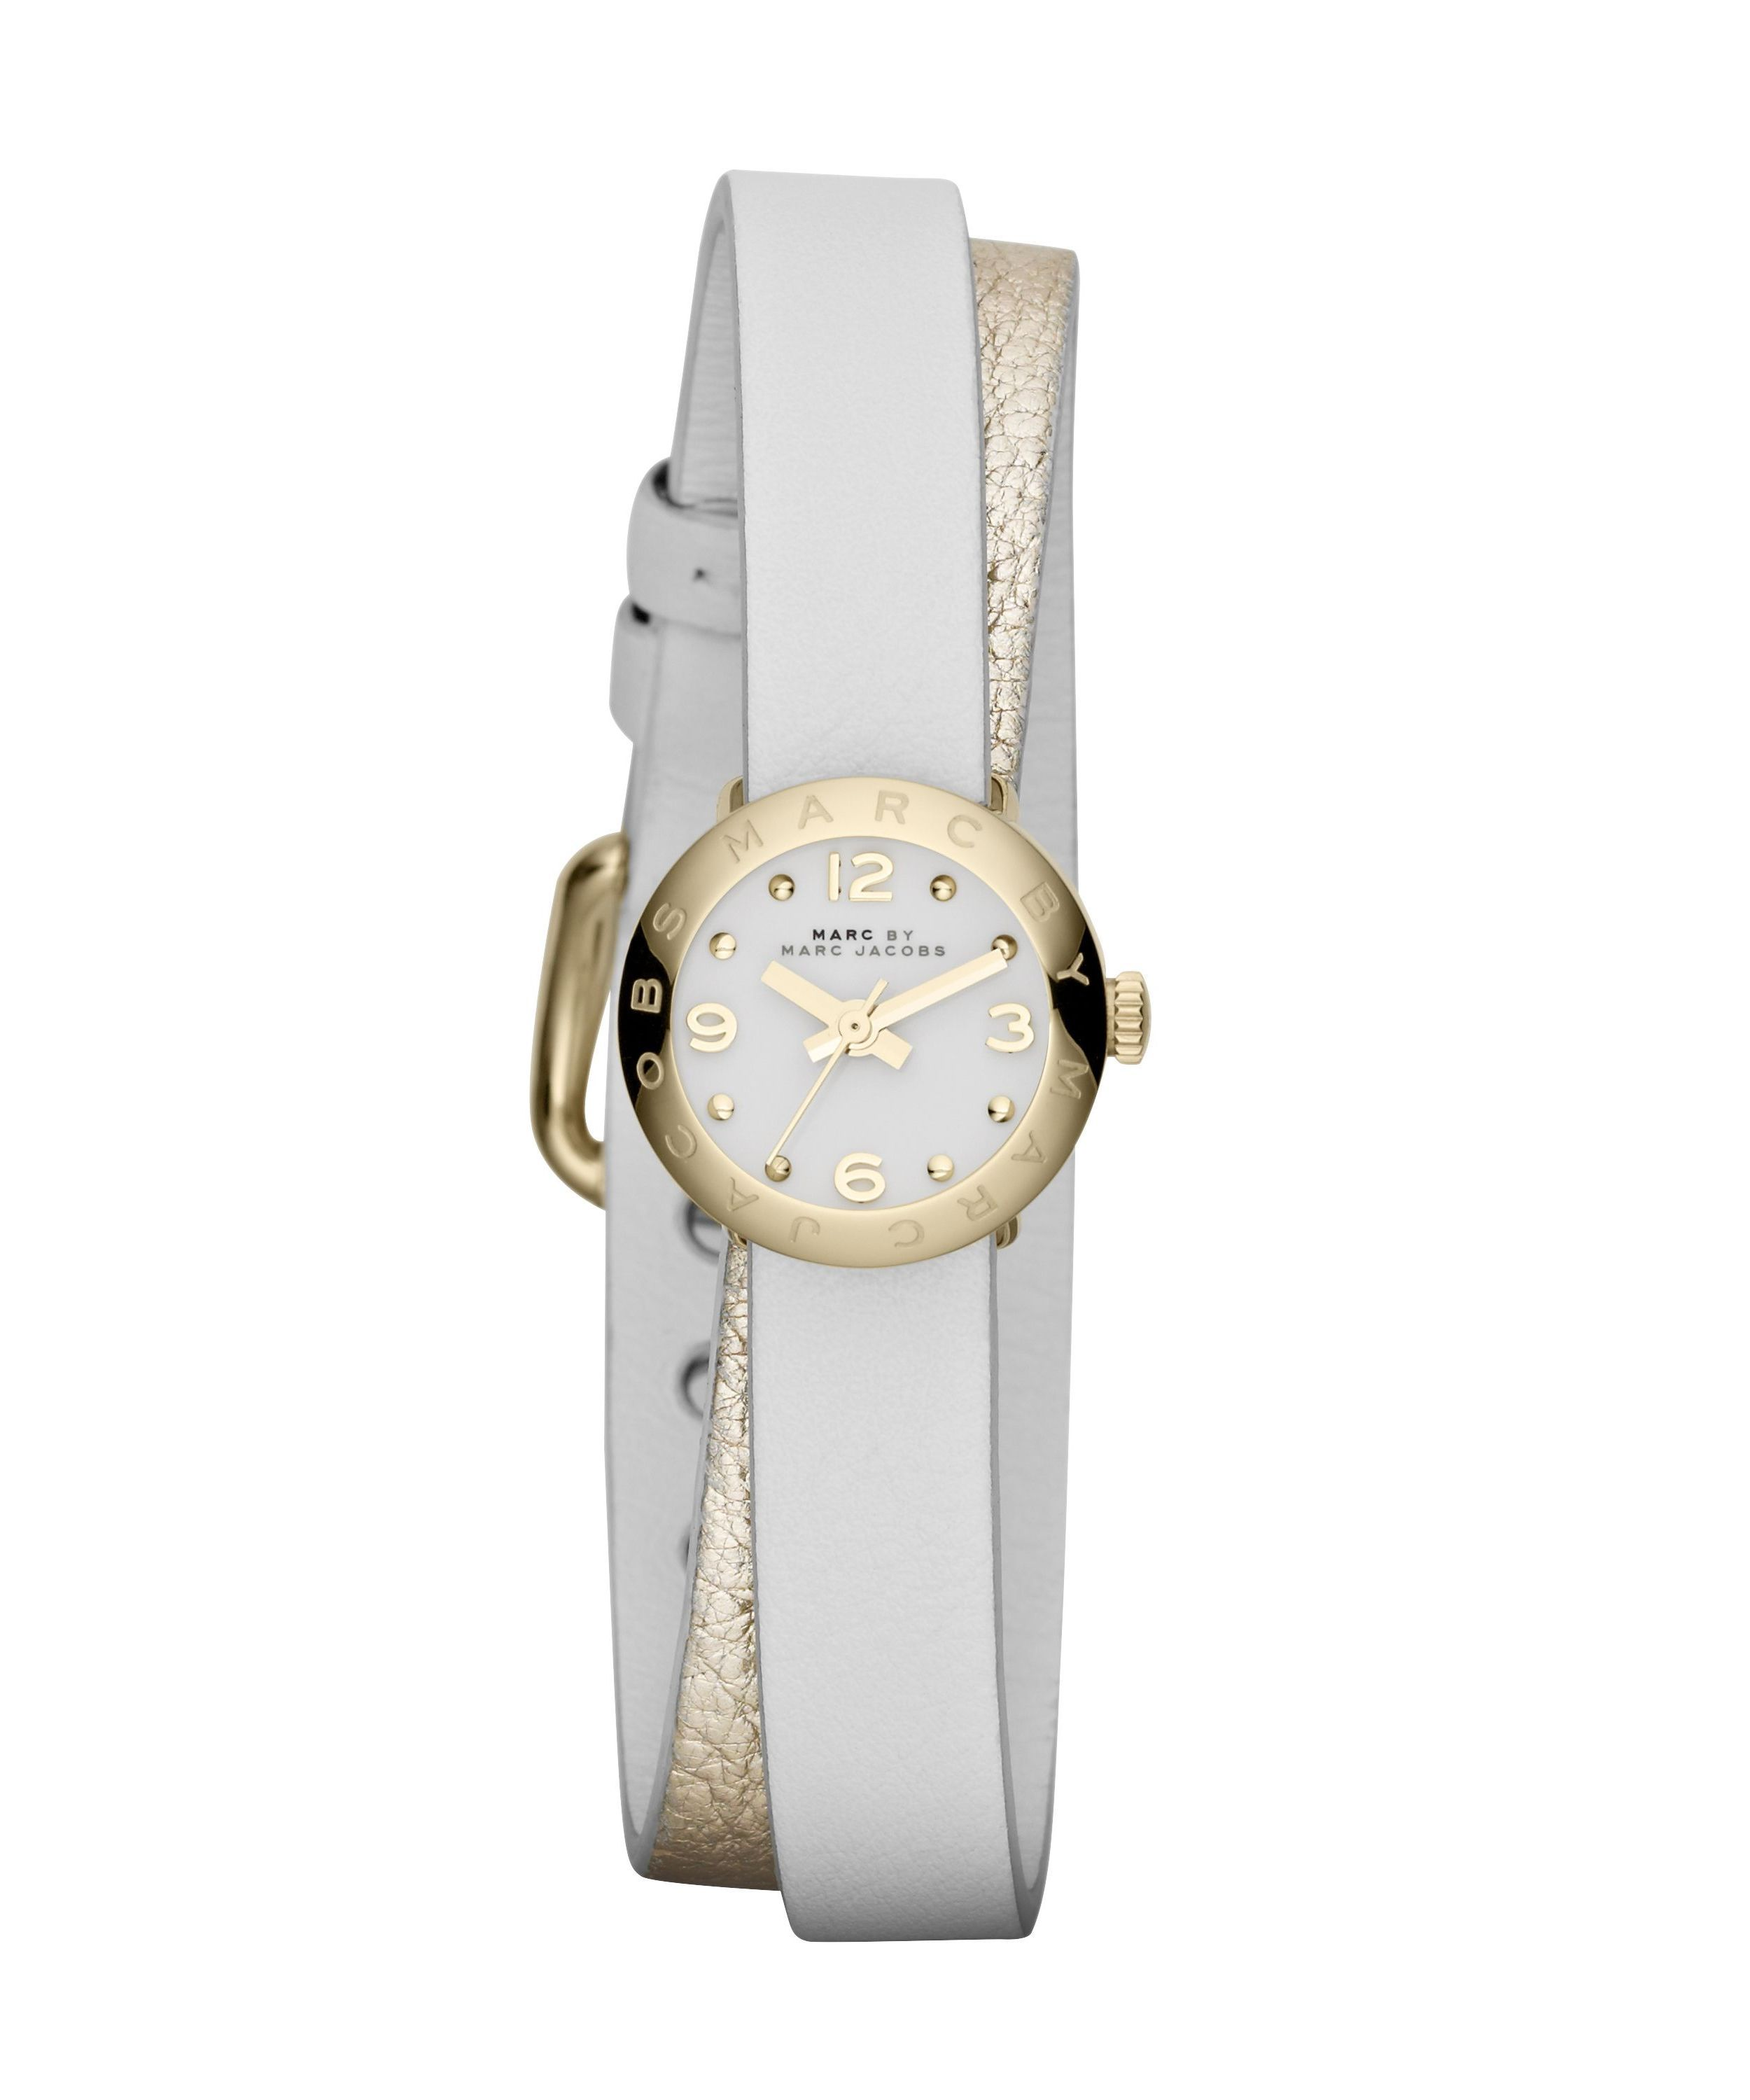 MBM1255 Amy dinky gold/white leather ladies watch